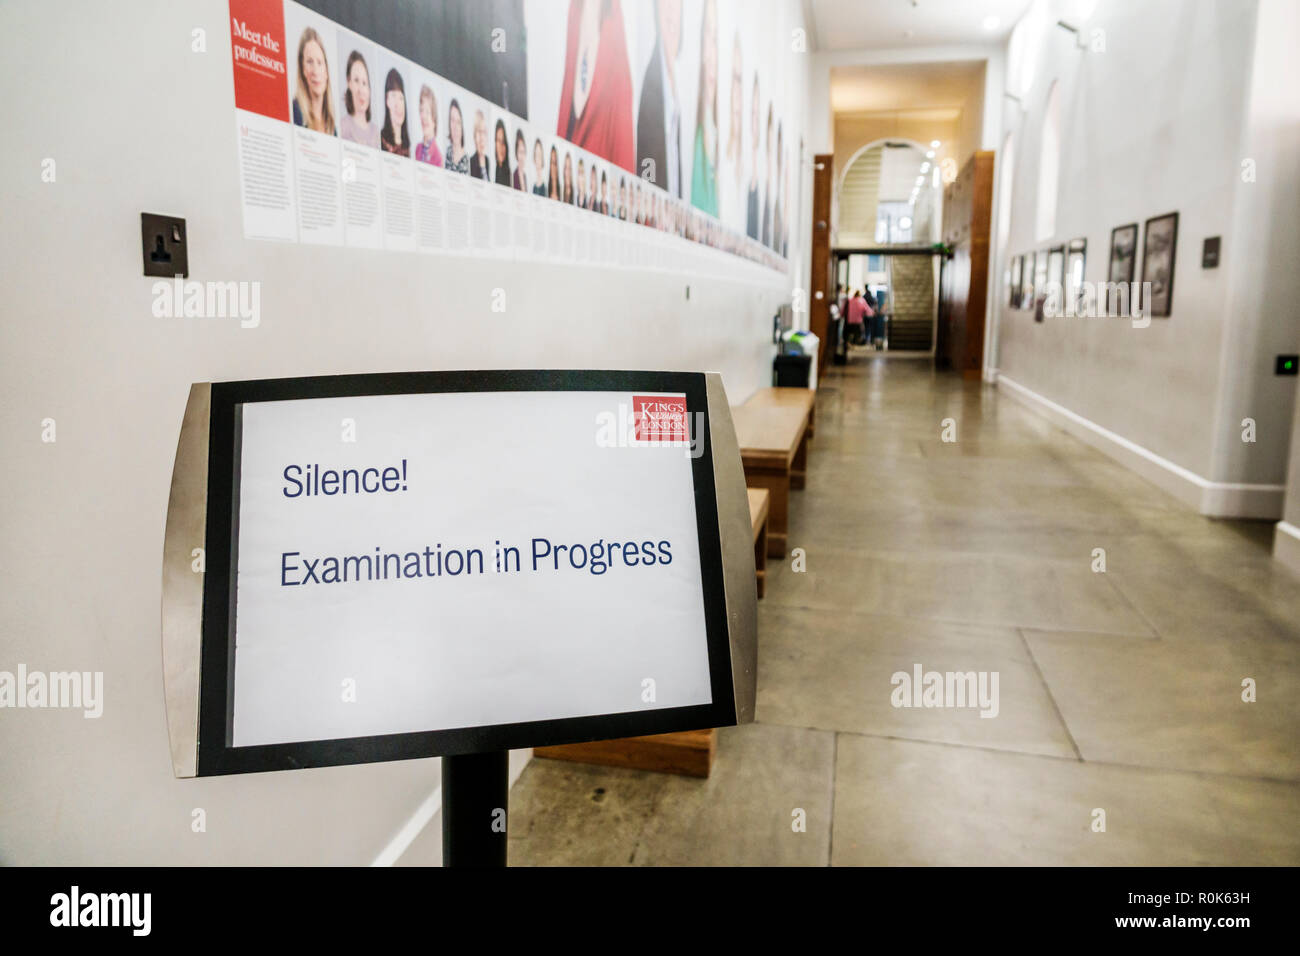 London England United Kingdom Great Britain Covent Garden Strand King's College King's Building campus public research university hallway sign silence - Stock Image